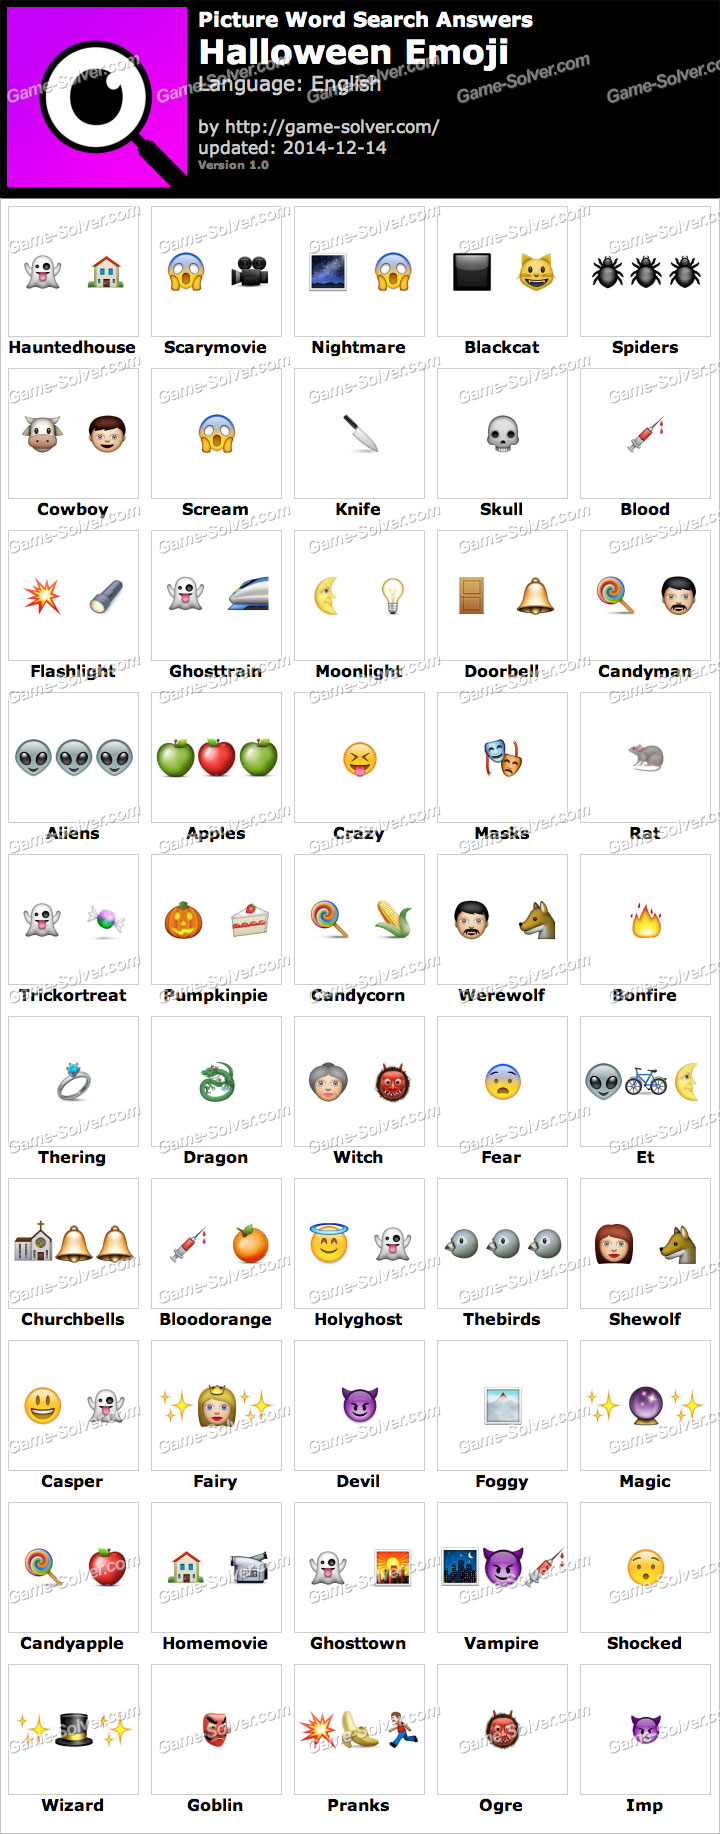 Picture Word Search Halloween Emoji Answers - Game Solver